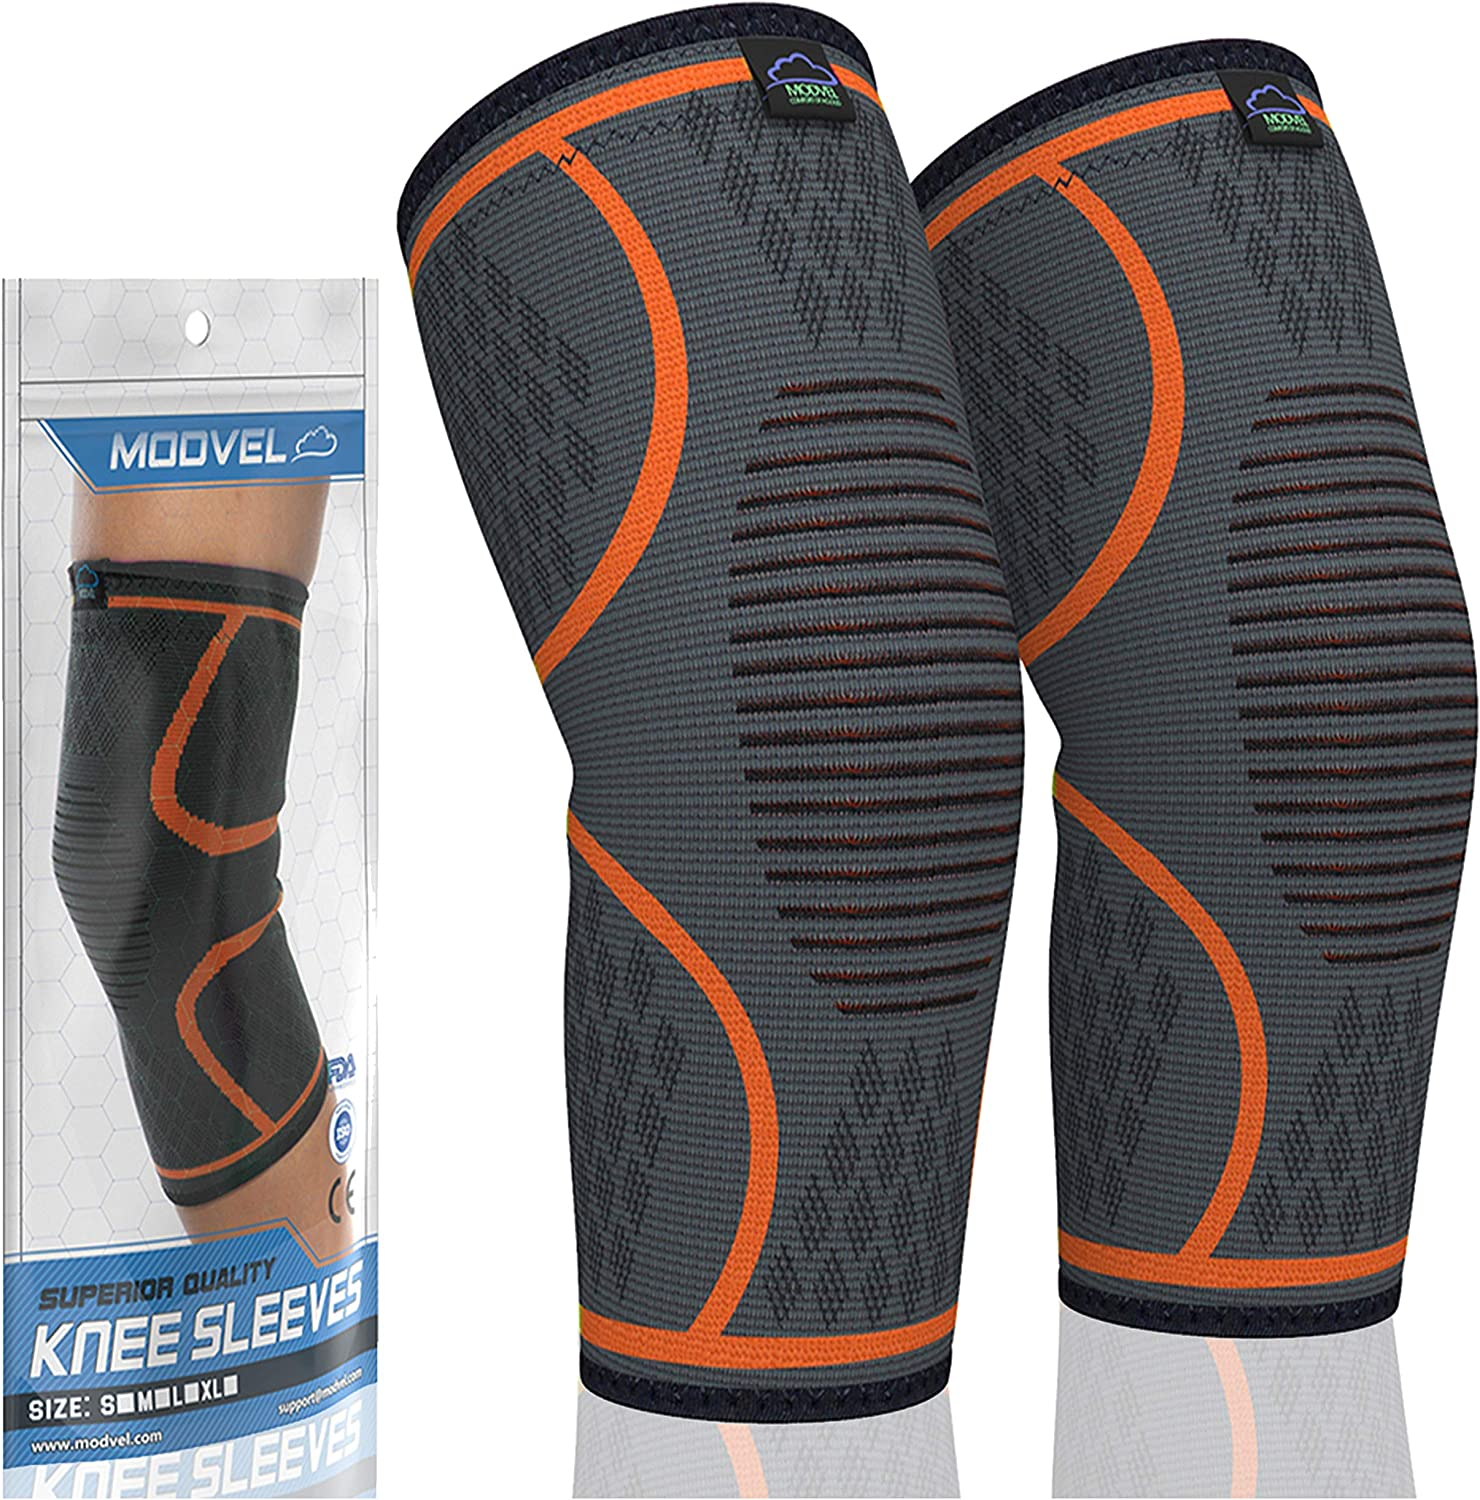 Modvel 2 Pack Knee Compression Sleeve | Knee Brace for Men & Women | Knee Support for Running, Basketball, Weightlifting, Gym, Workout, Sports | Joint Pain Relief - Please Check Sizing Chart